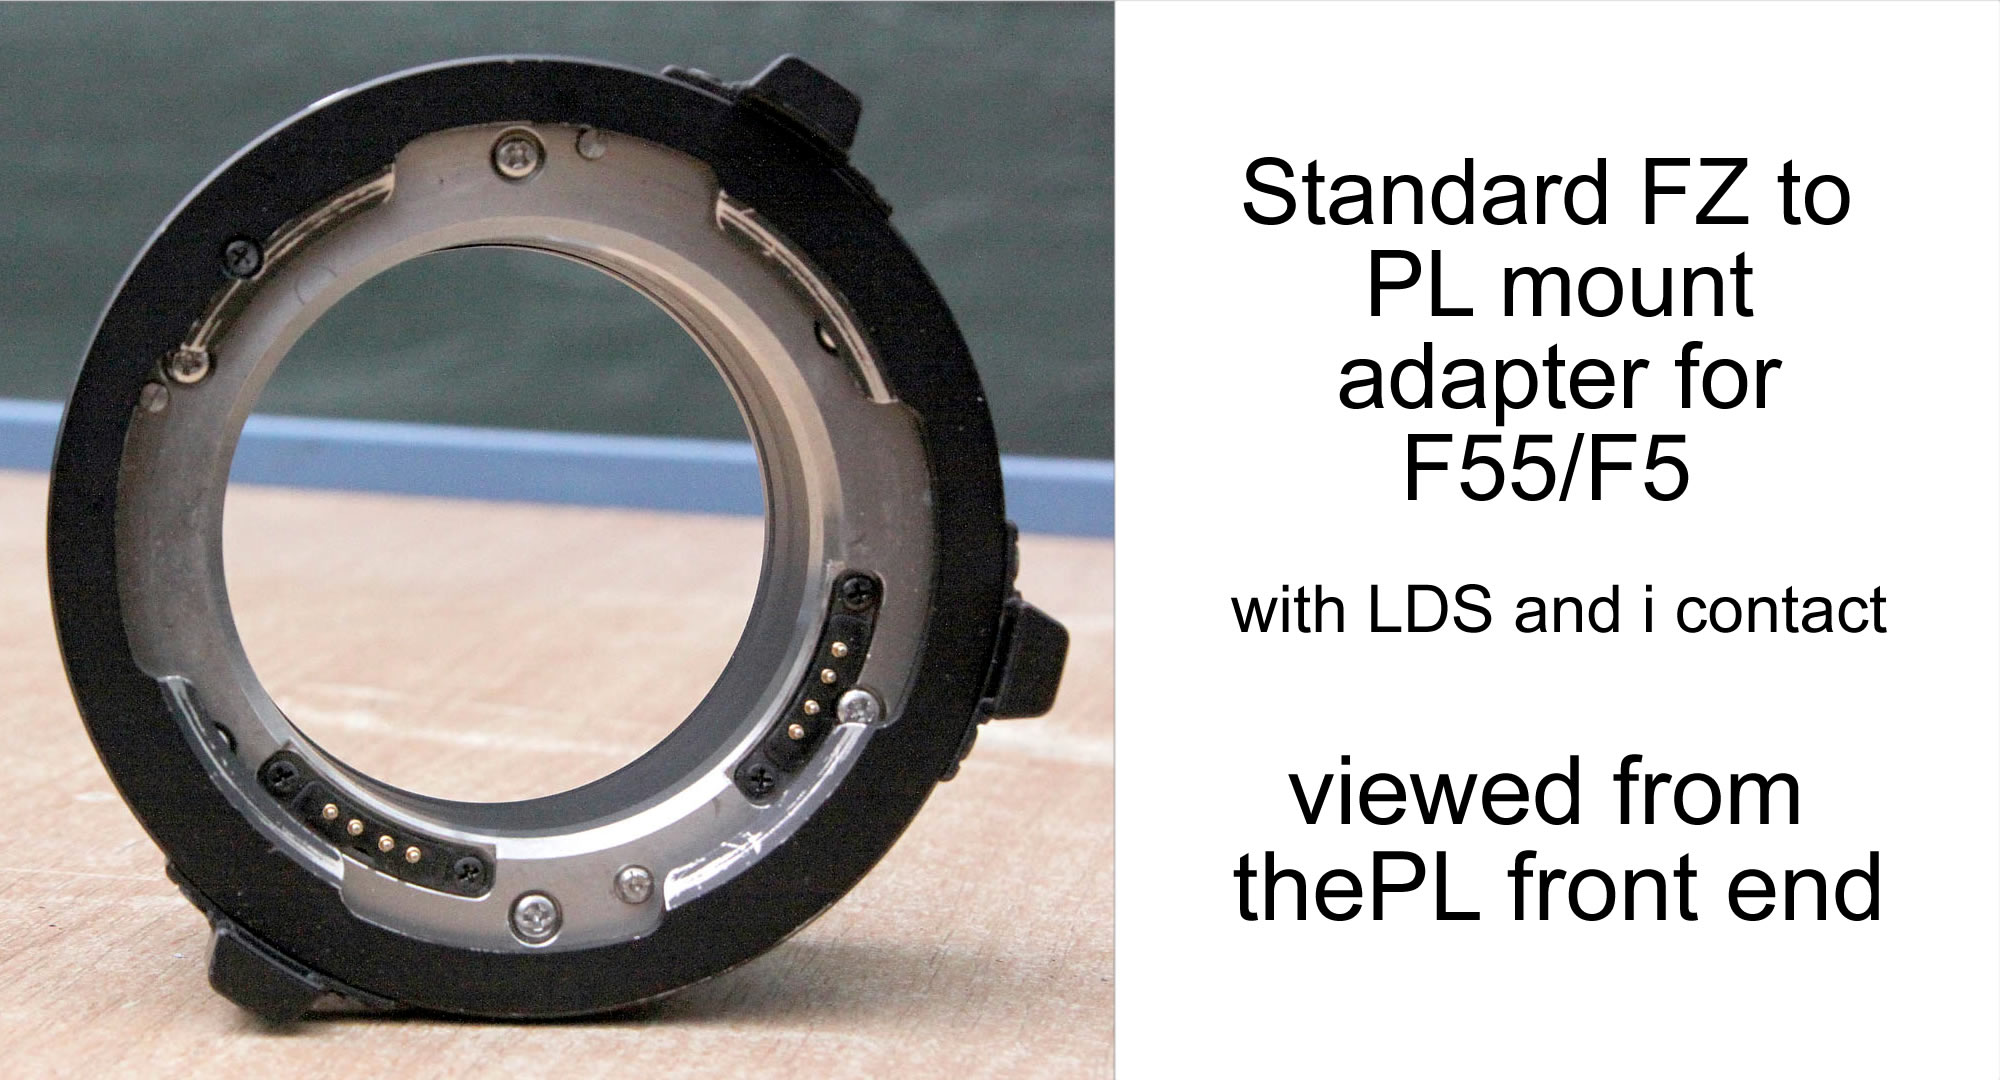 FZ to PL mount adapter for F55/F5 with LDS/i contacts - Image #1